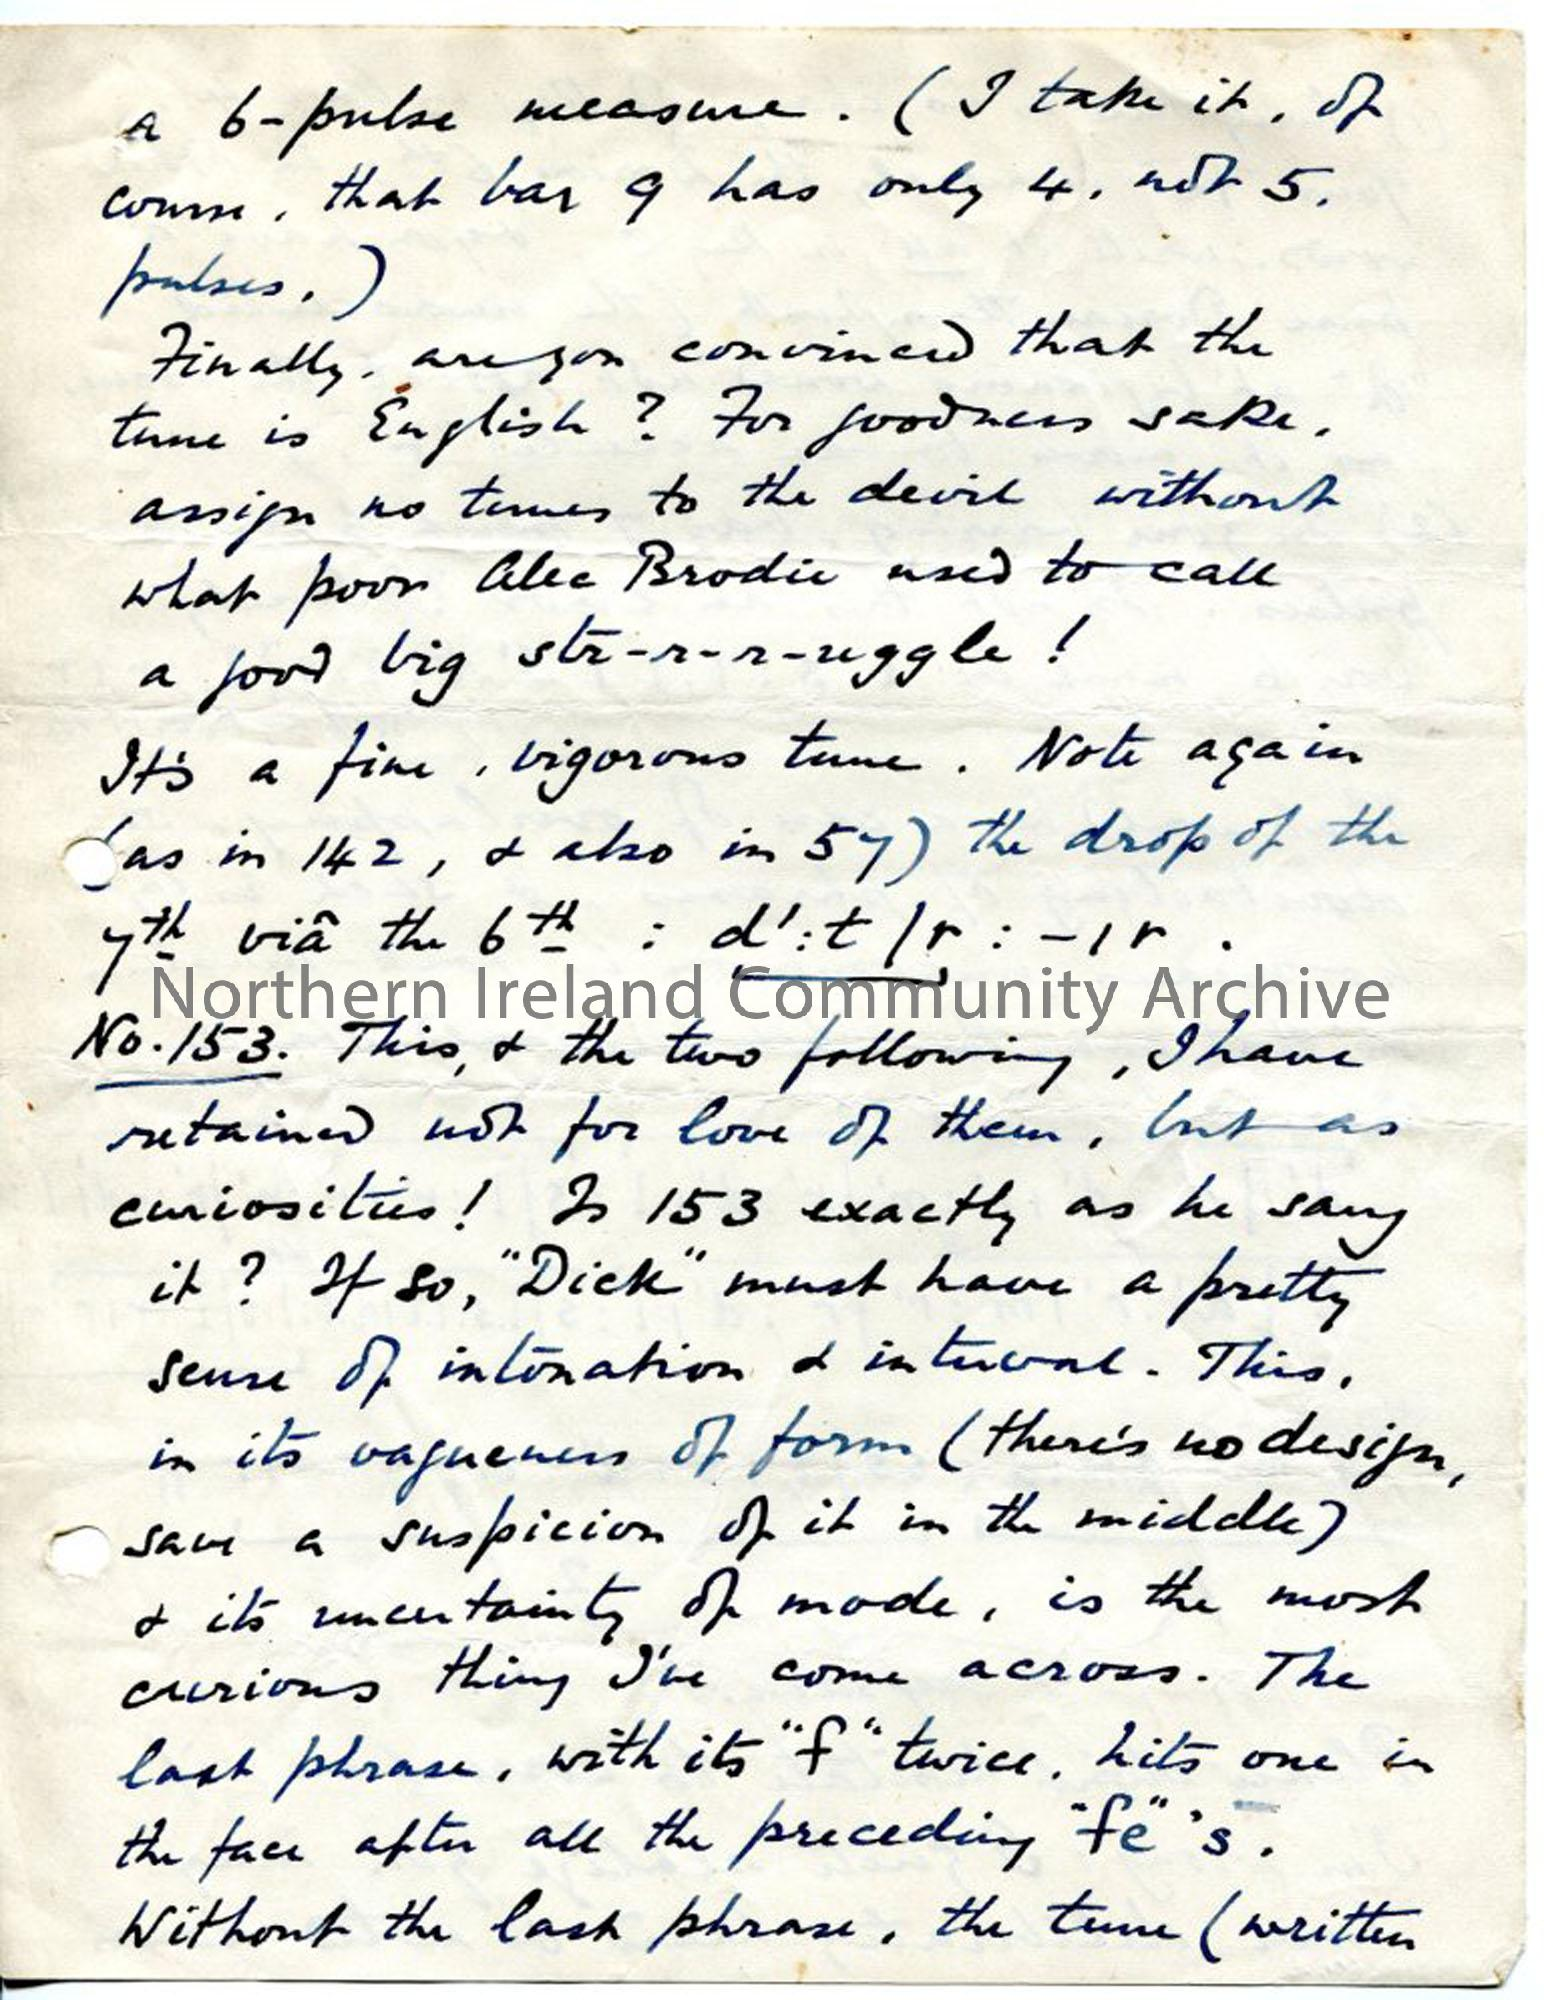 Page 9 of 12, letter from Norman Hay, 1.2.1927